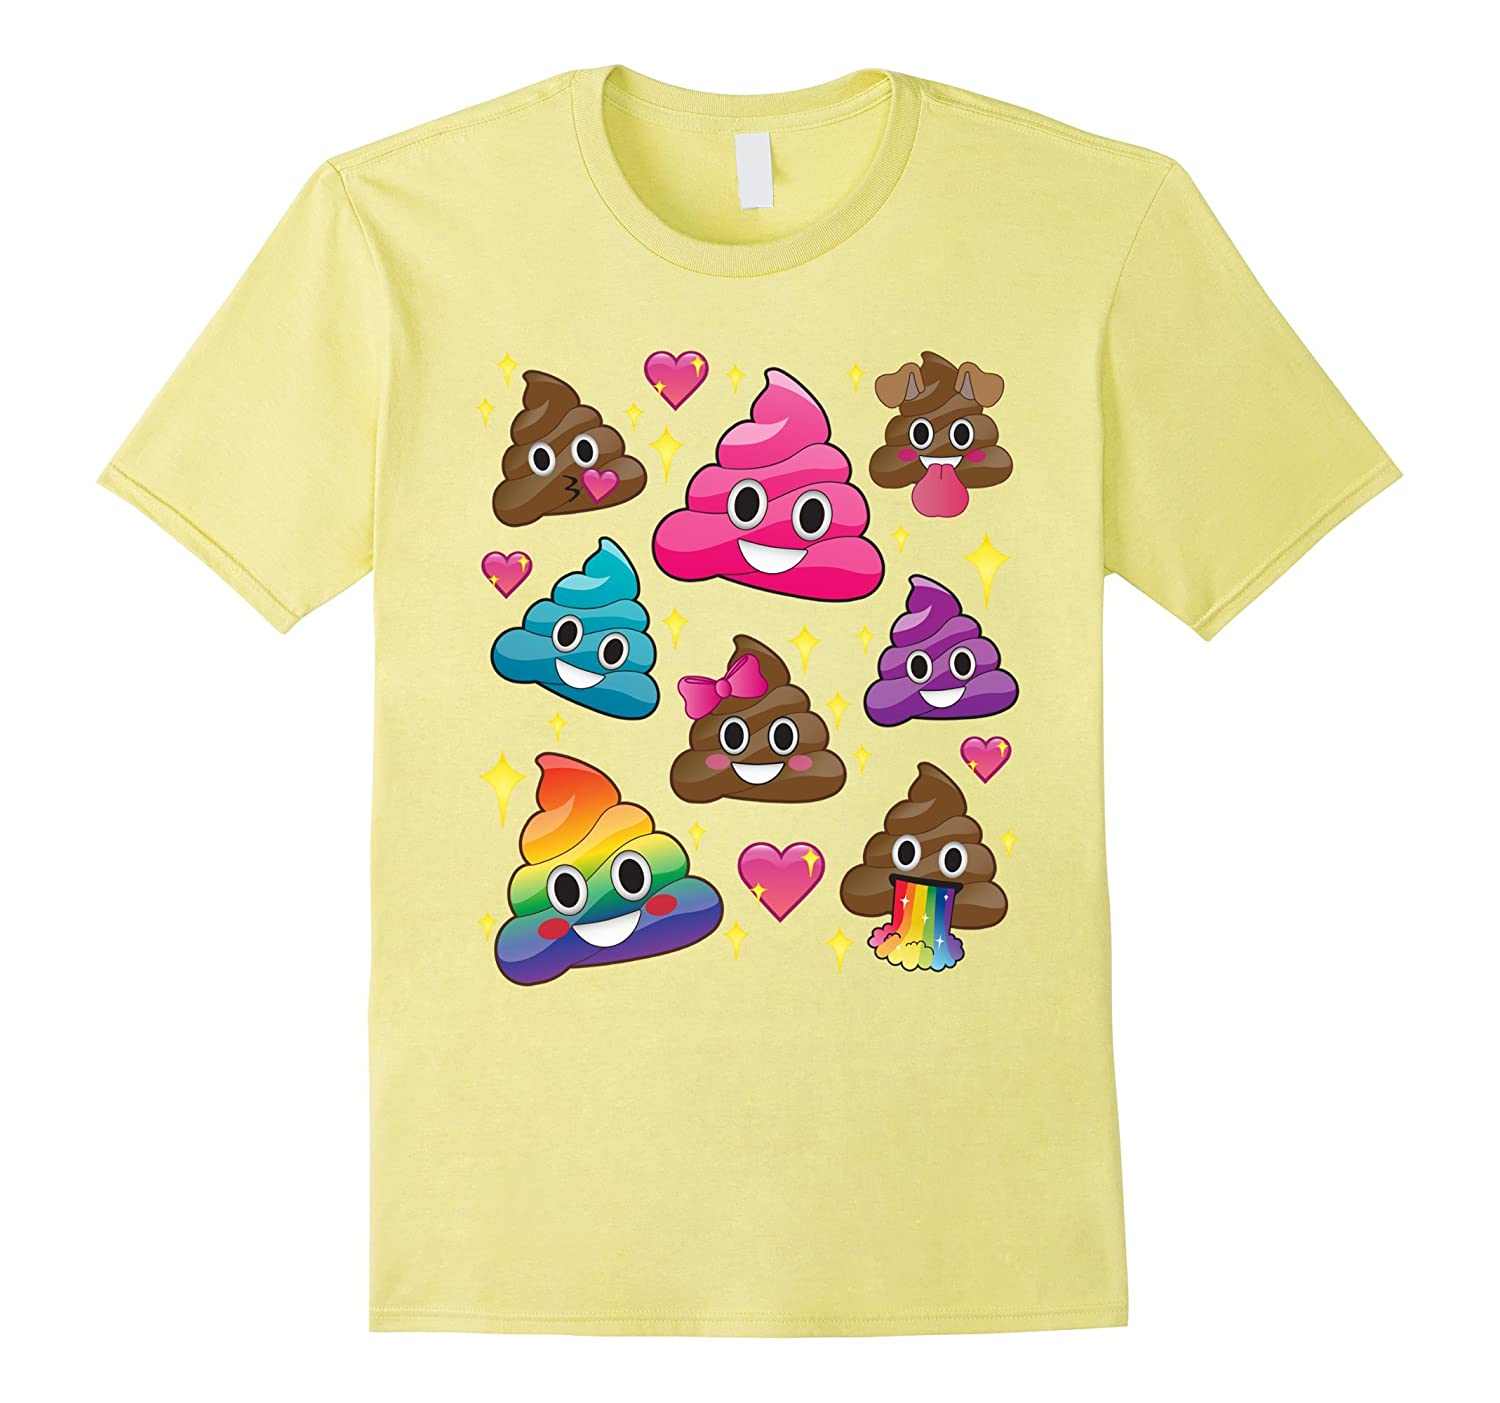 7525784f Cute Girl Rainbow Emoji Poop T-Shirt – BFF Gift or PJ Tee-CL – Colamaga